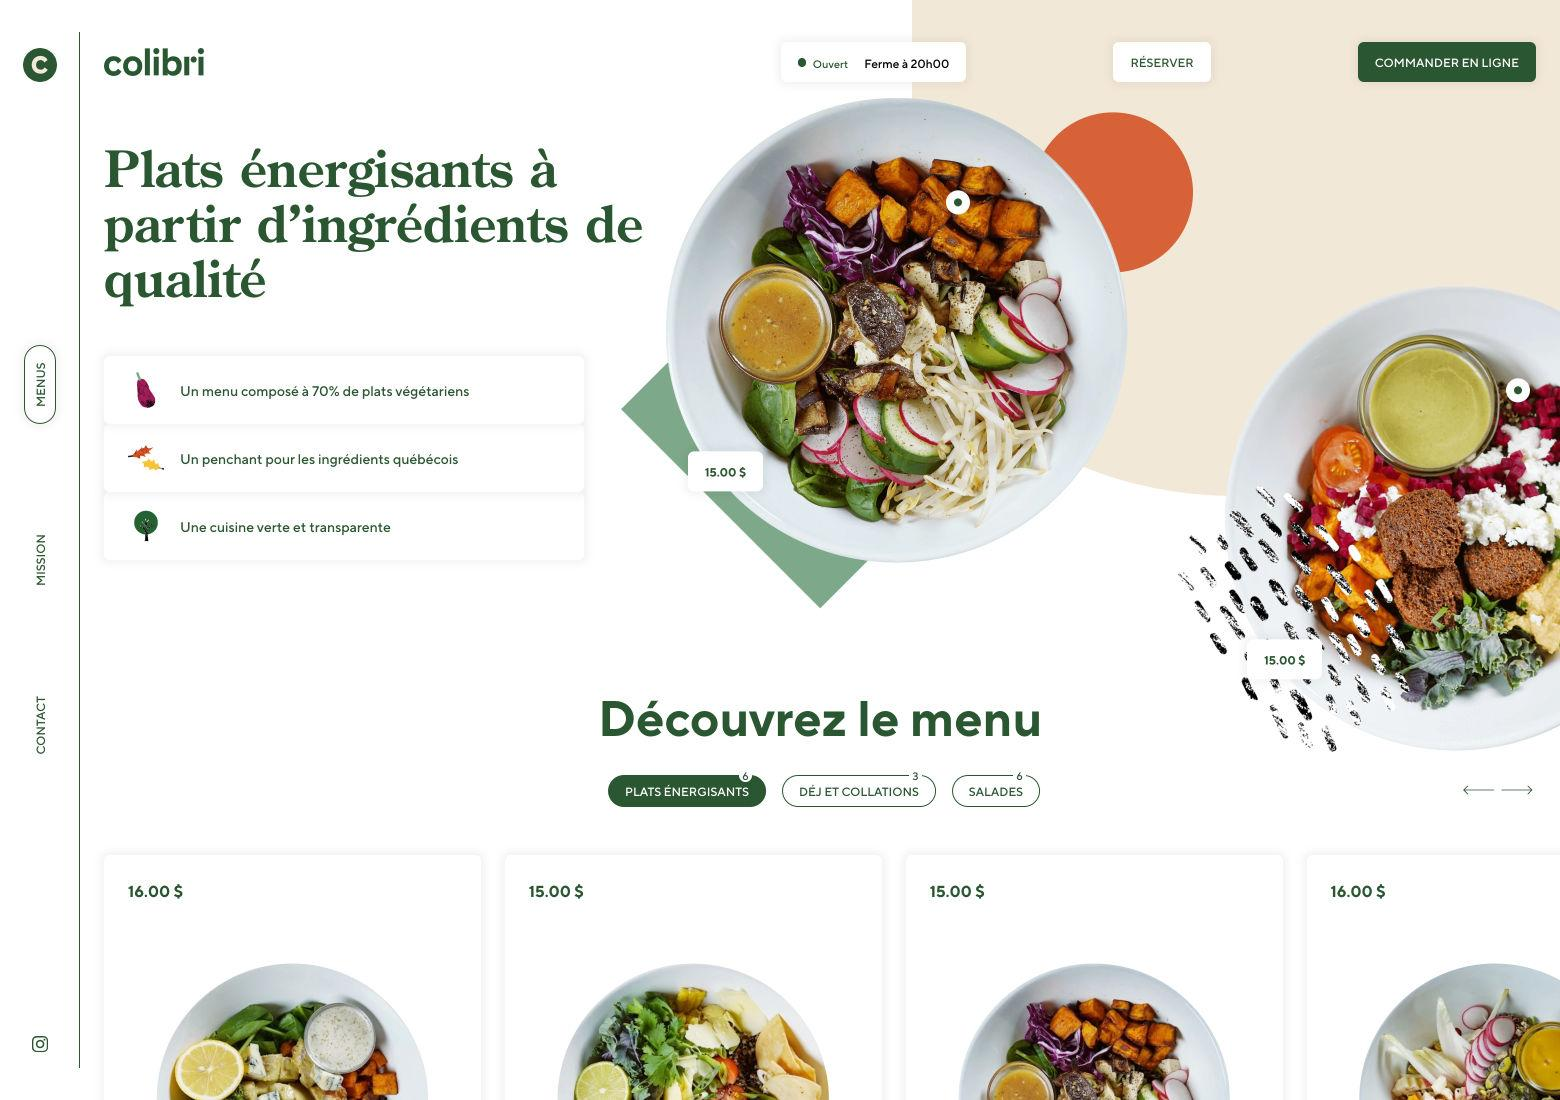 F-shaped web layout patterns work well for sites with a lot of content